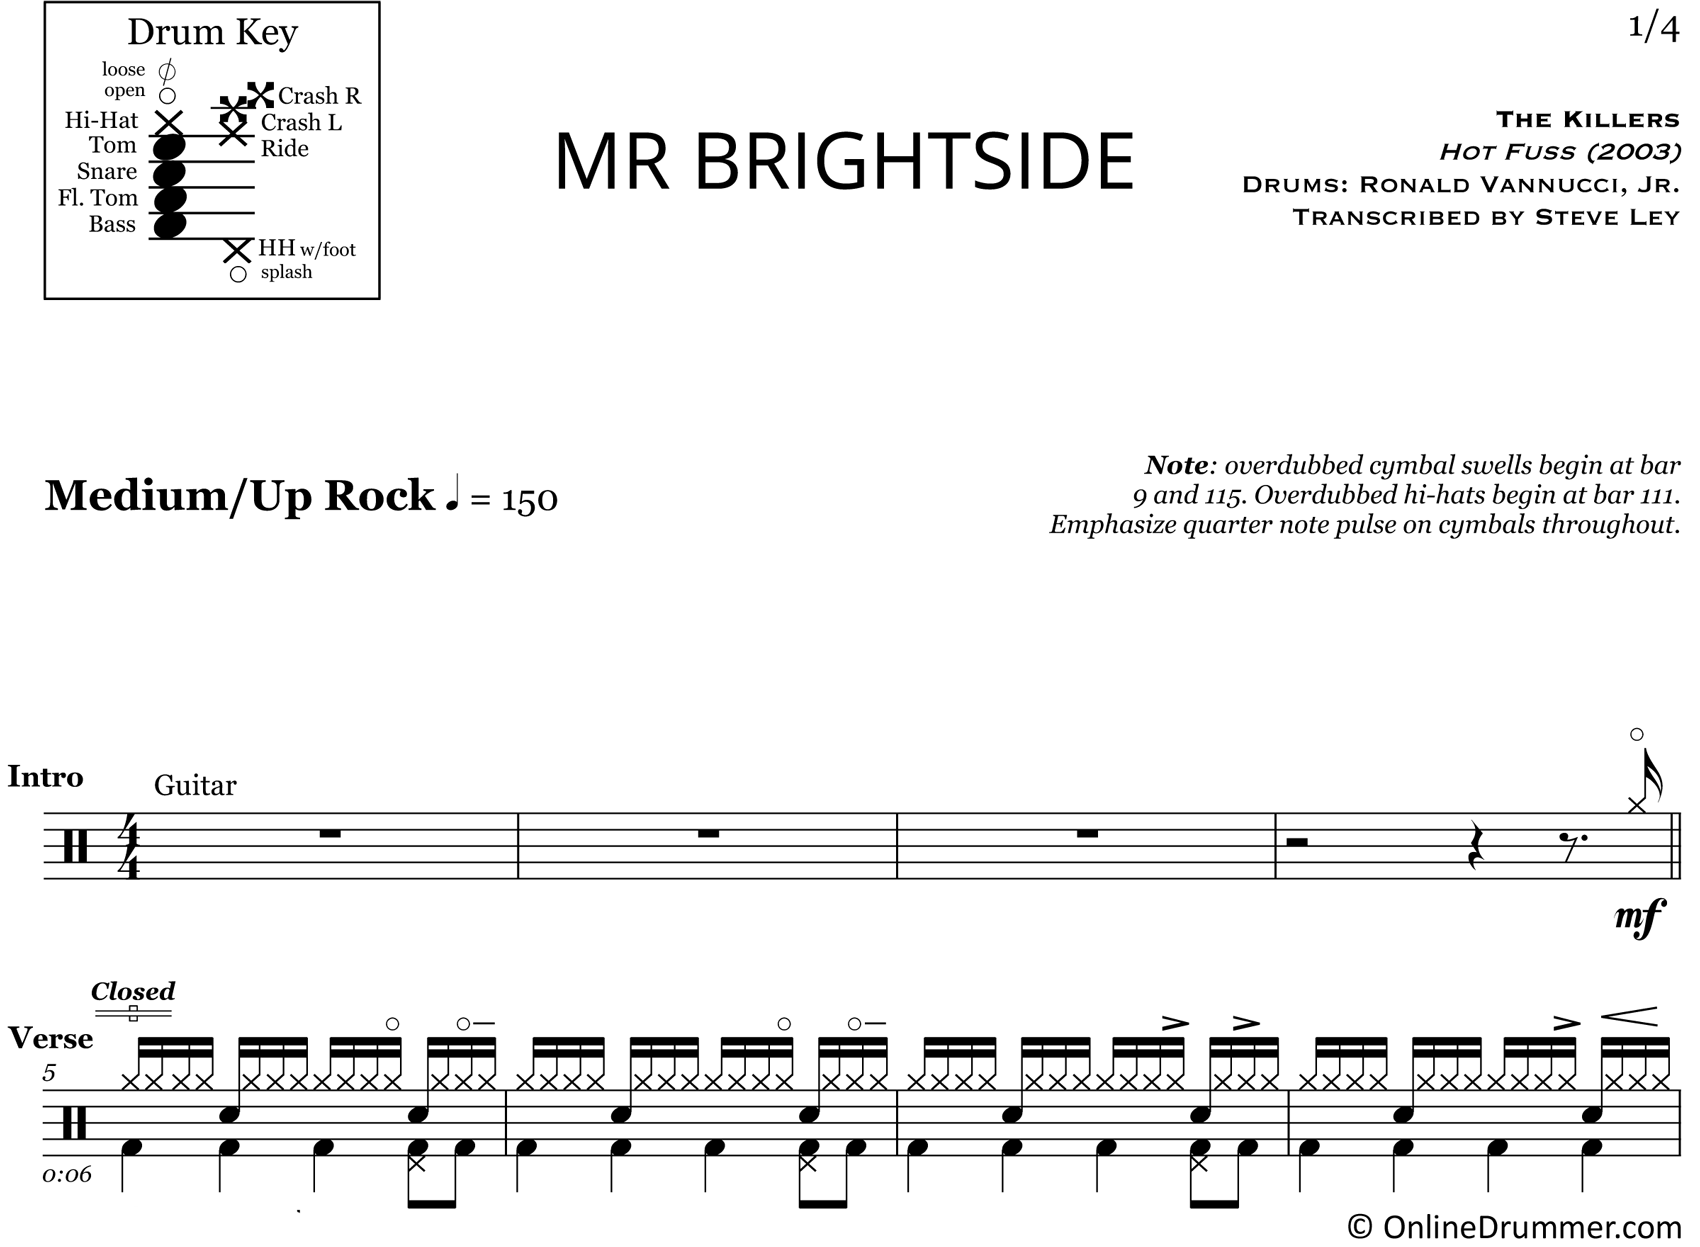 Mr. Brightside - The Killers - Drum Sheet Music